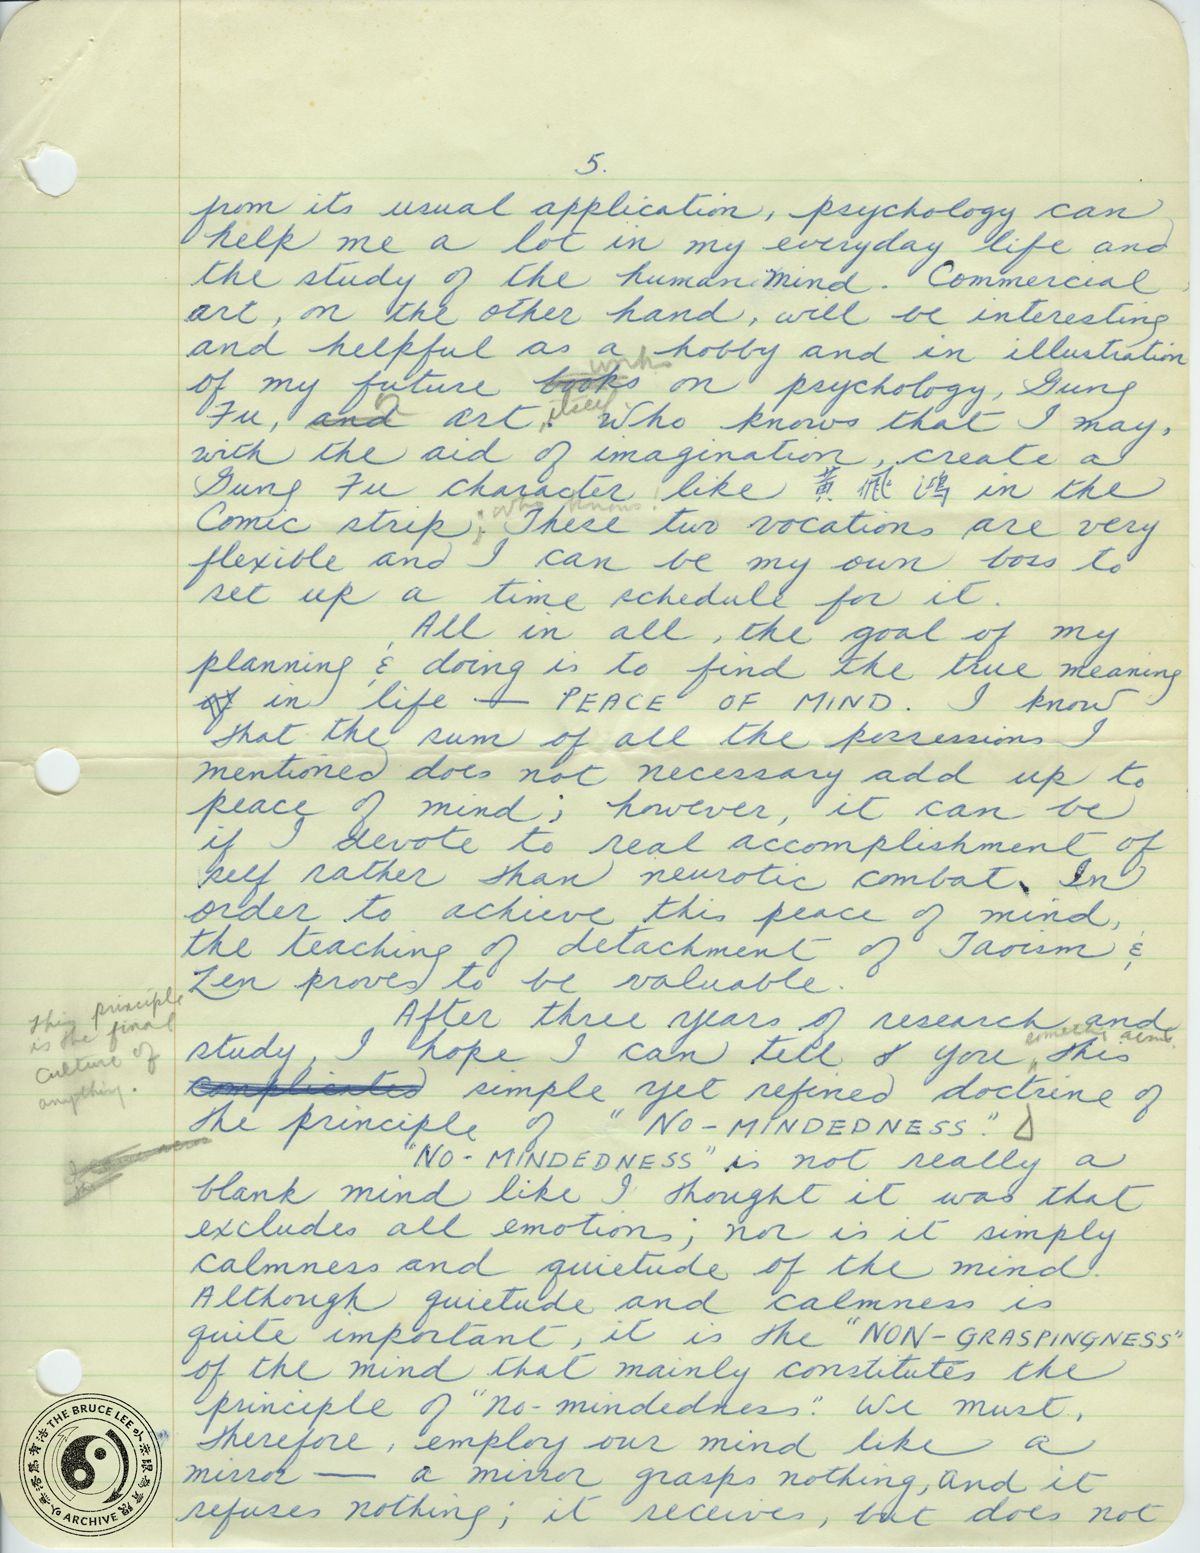 Letter-to-Pearl-draft-pg.5-archive.jpg